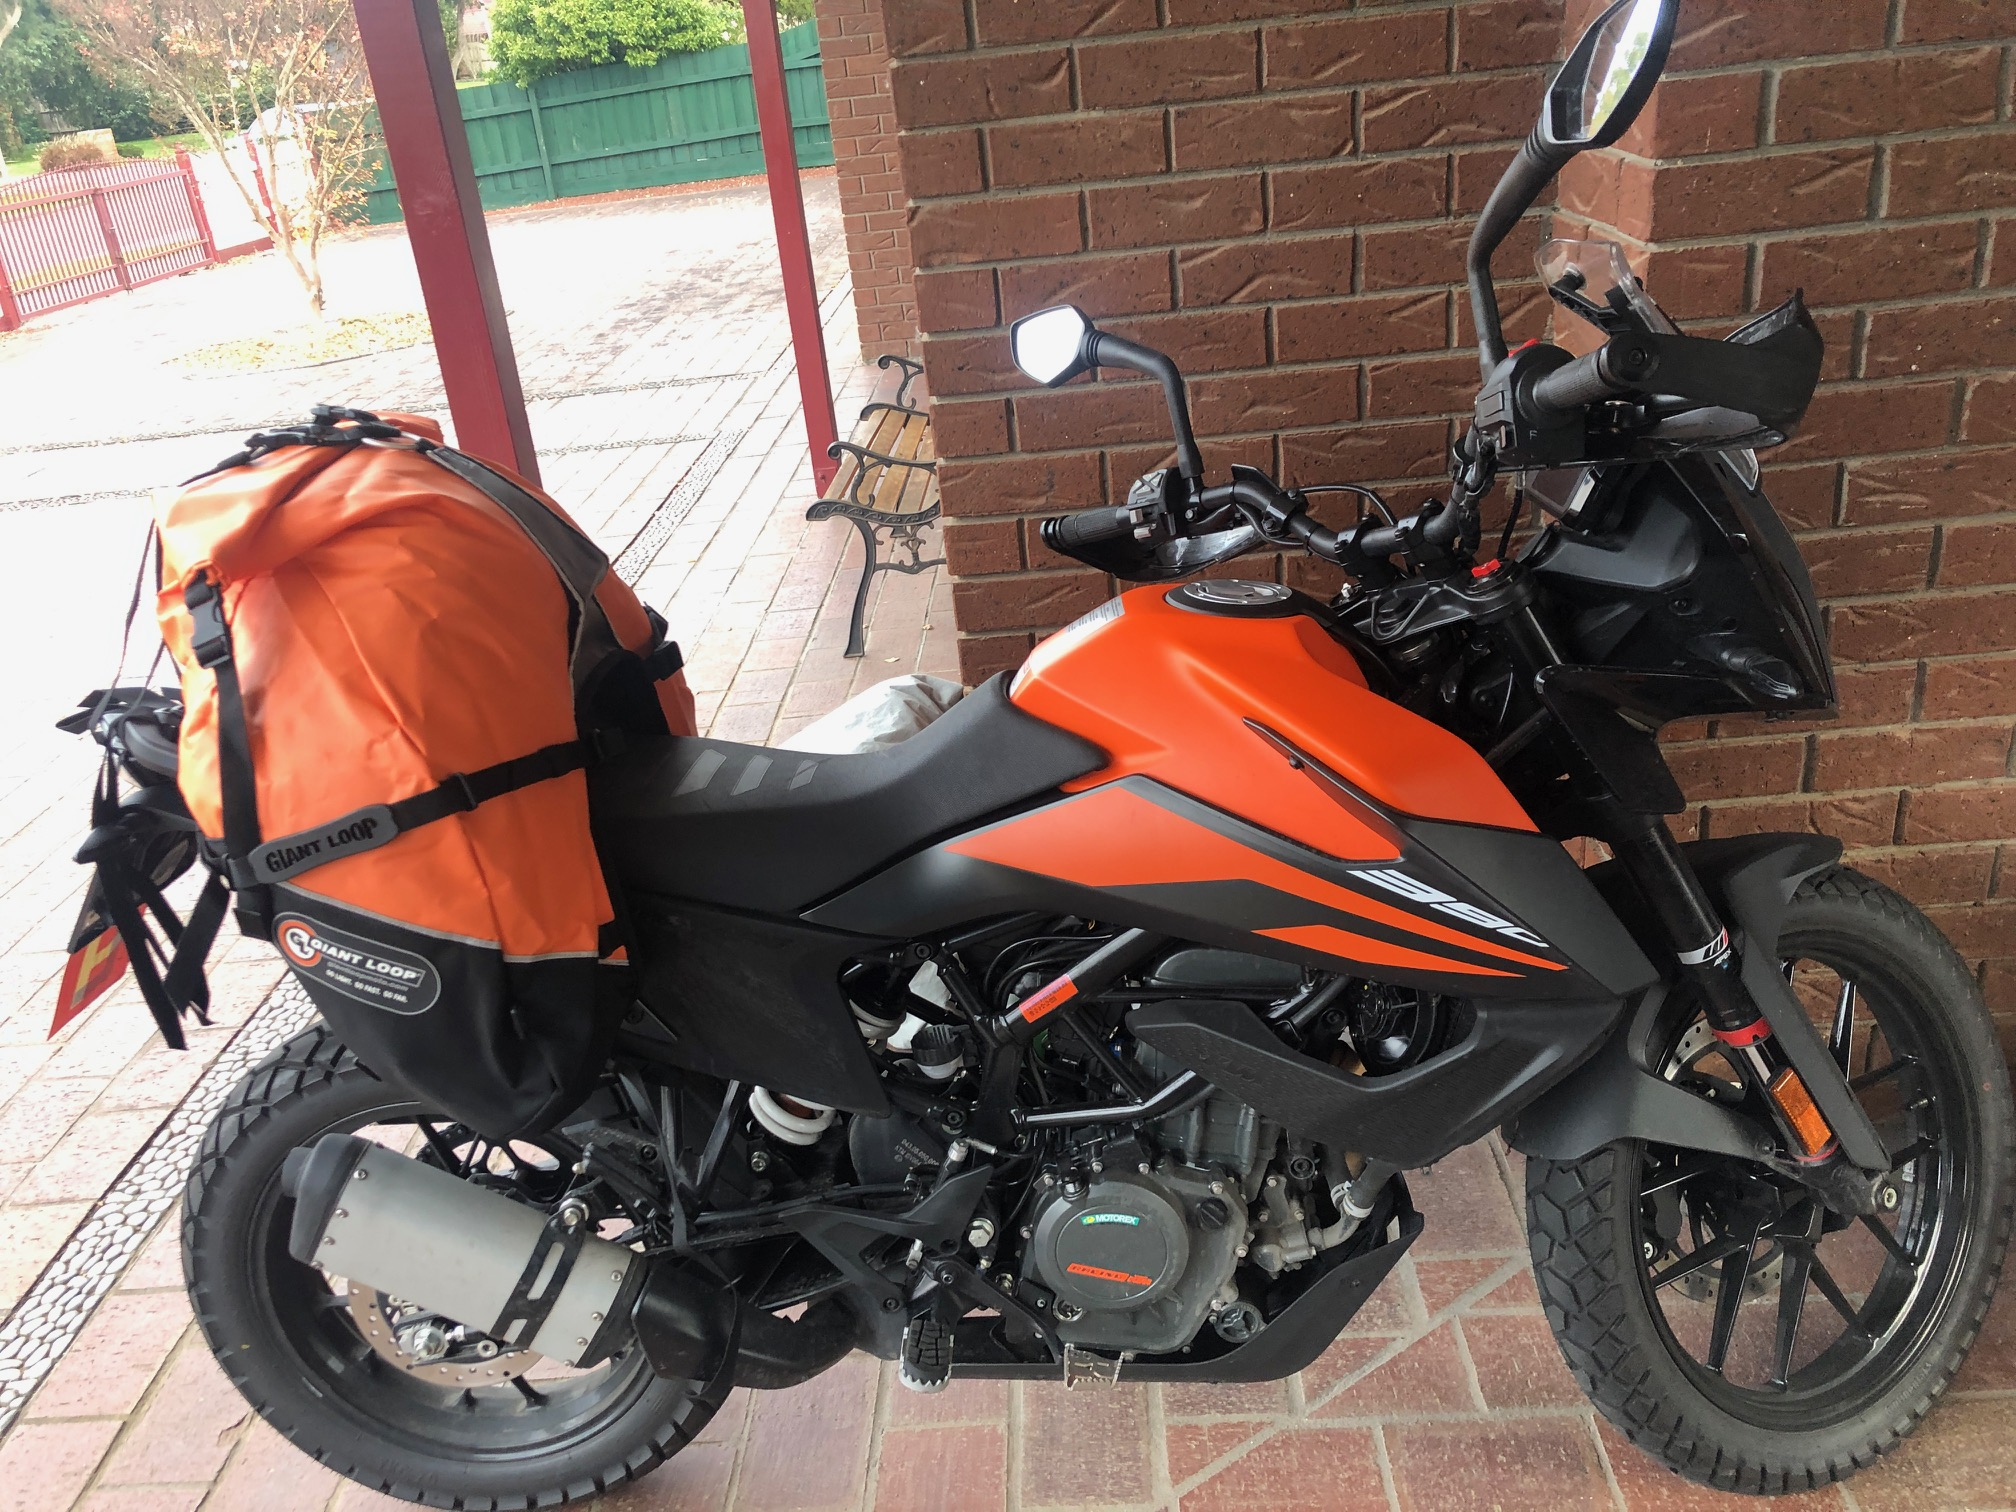 KTM 390 Adventure with Great Basin Saddlebags